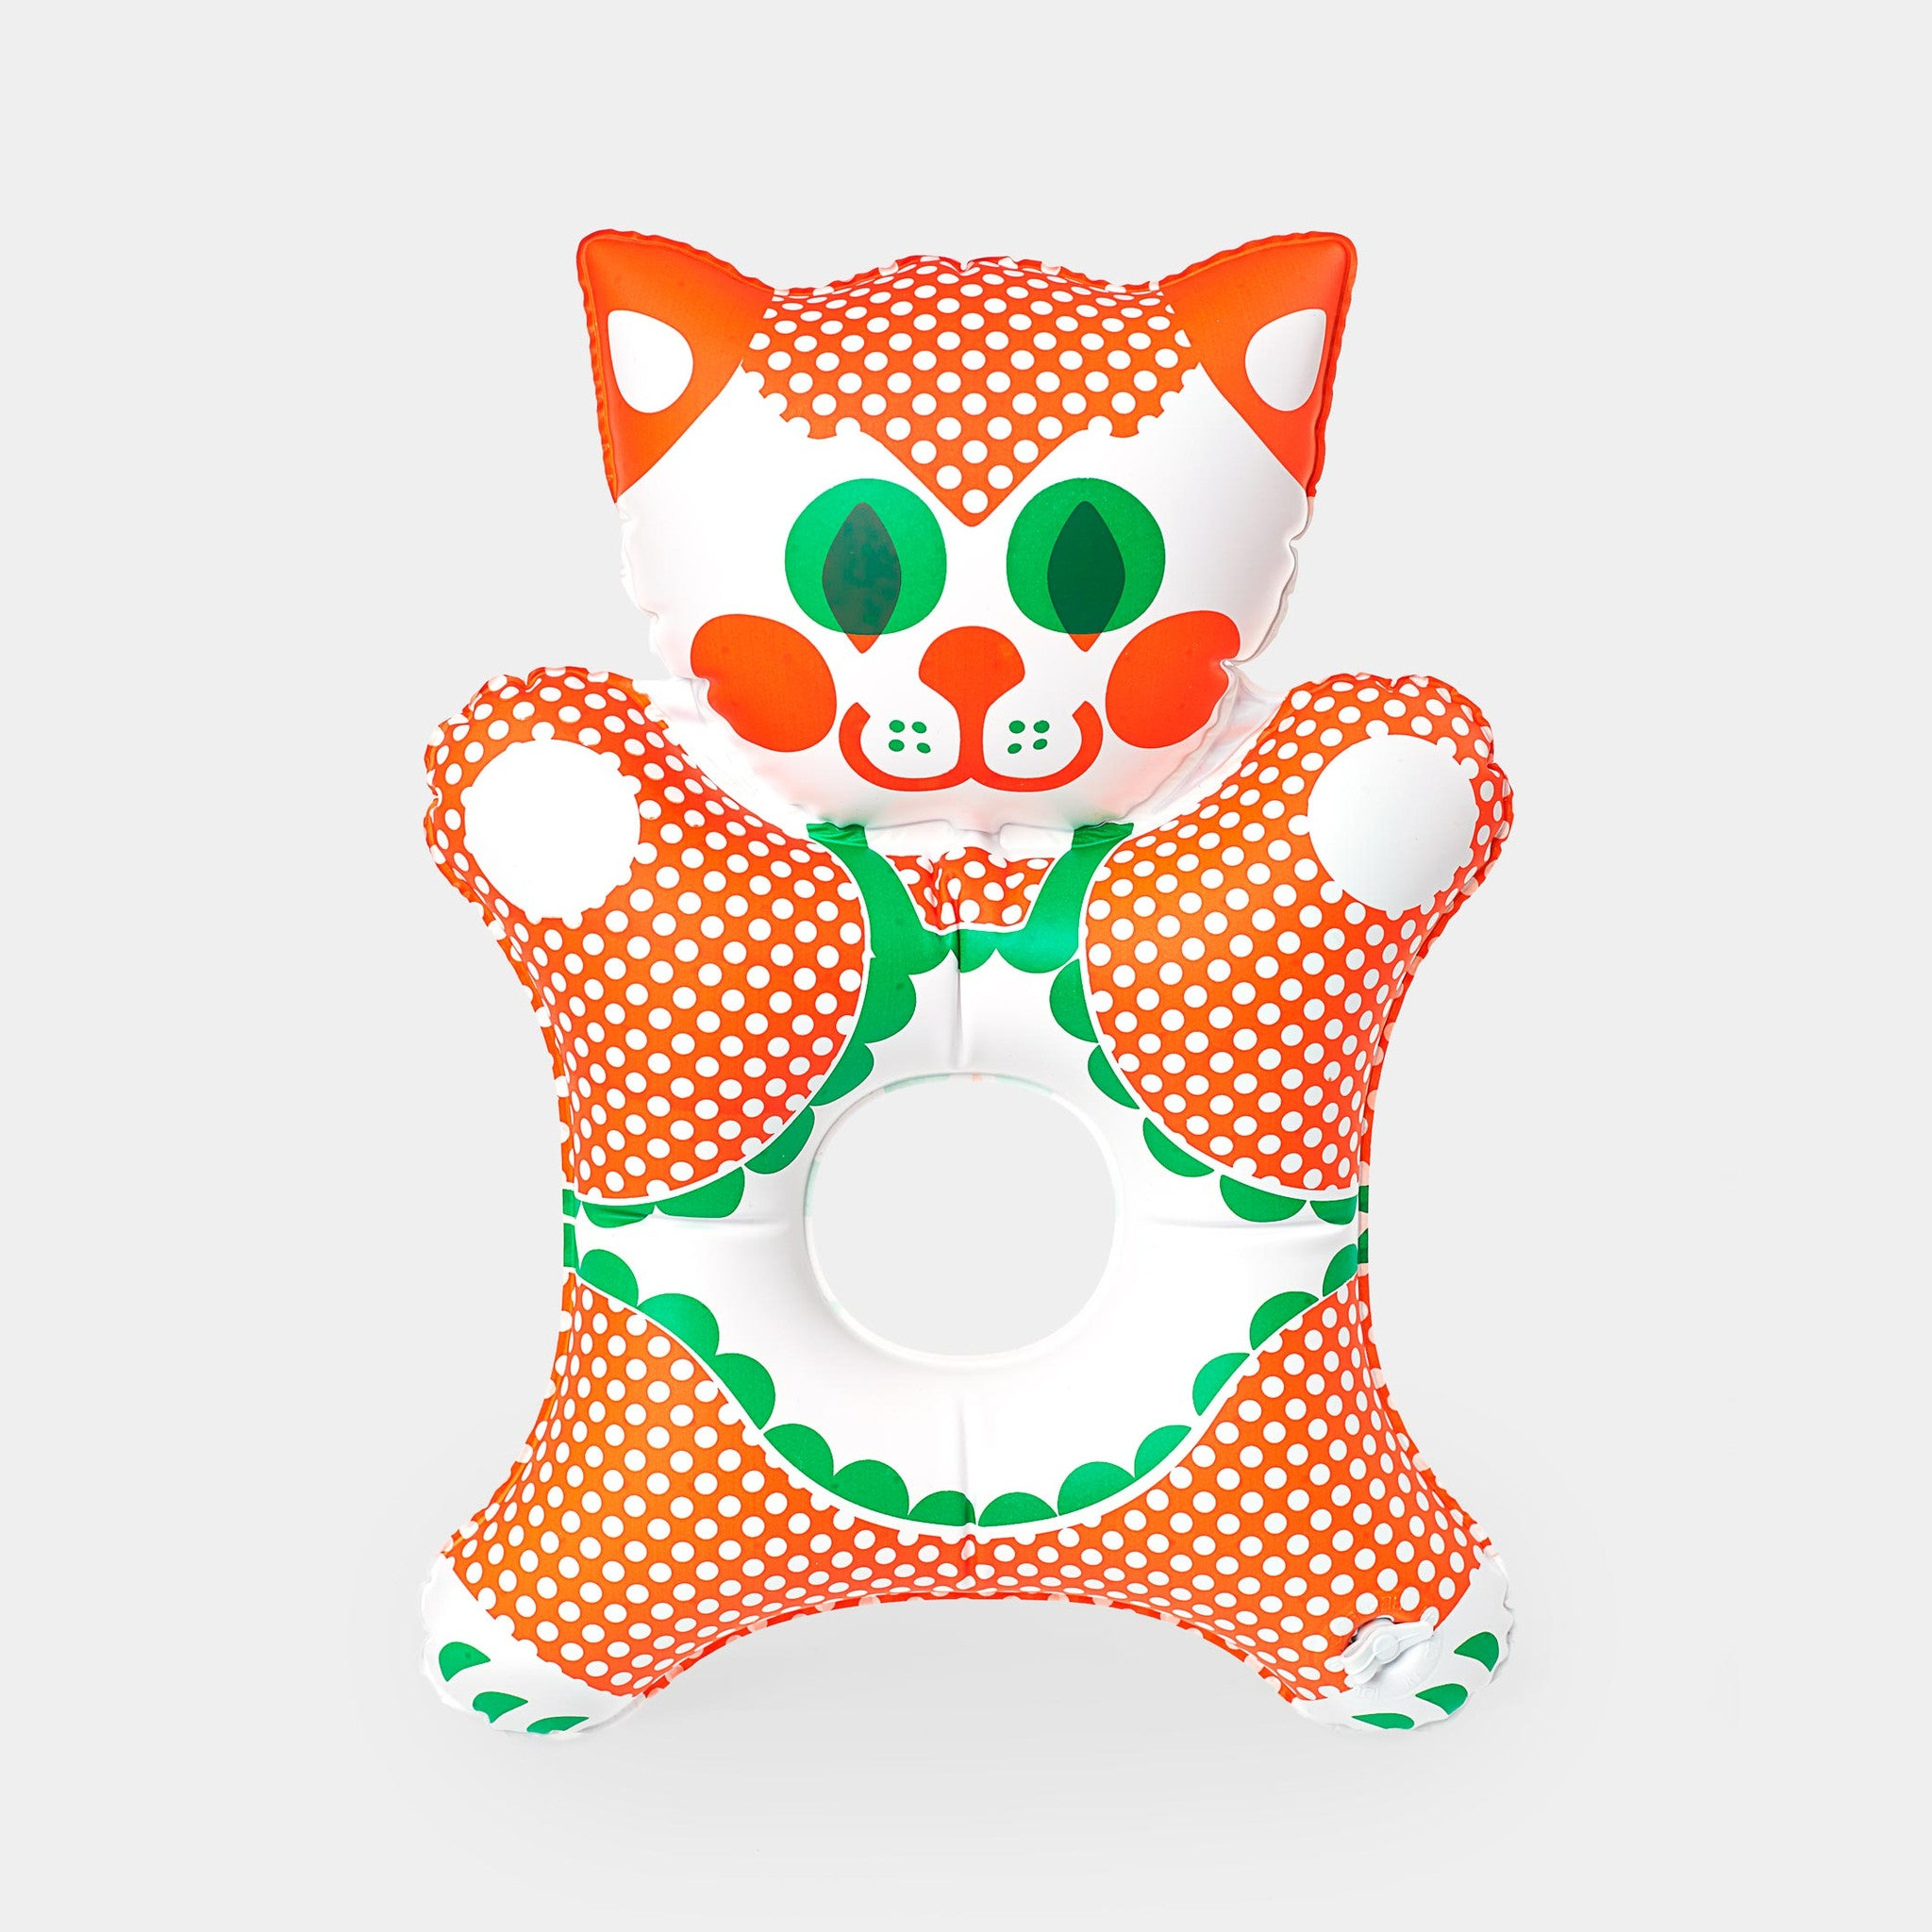 This beautiful inflatable Kitty is a Czech design classic from the 1970s. It is designed by the legendary Czech toy designer Libuše Niklová.